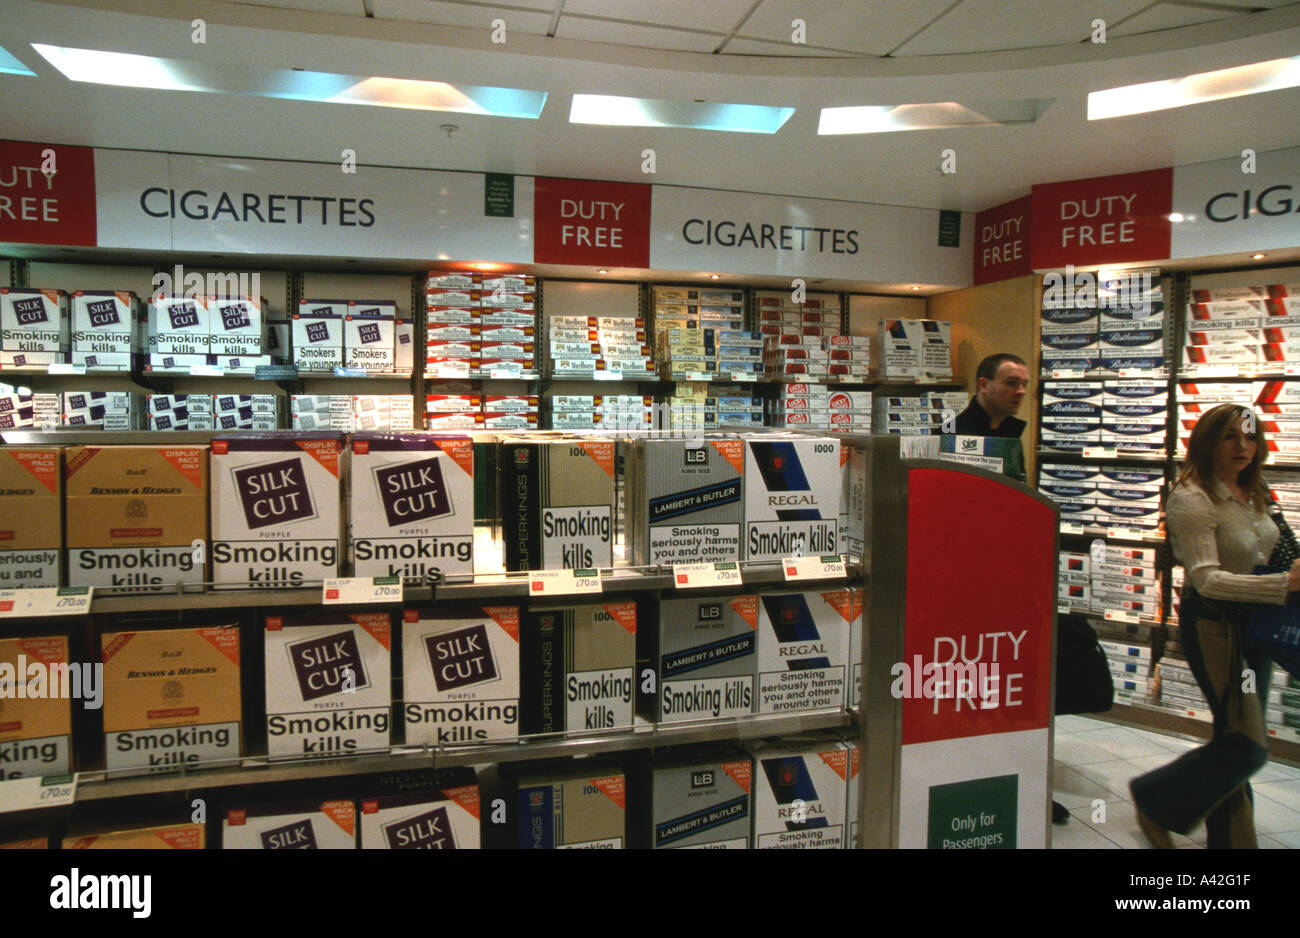 More cigarette price in Maryland